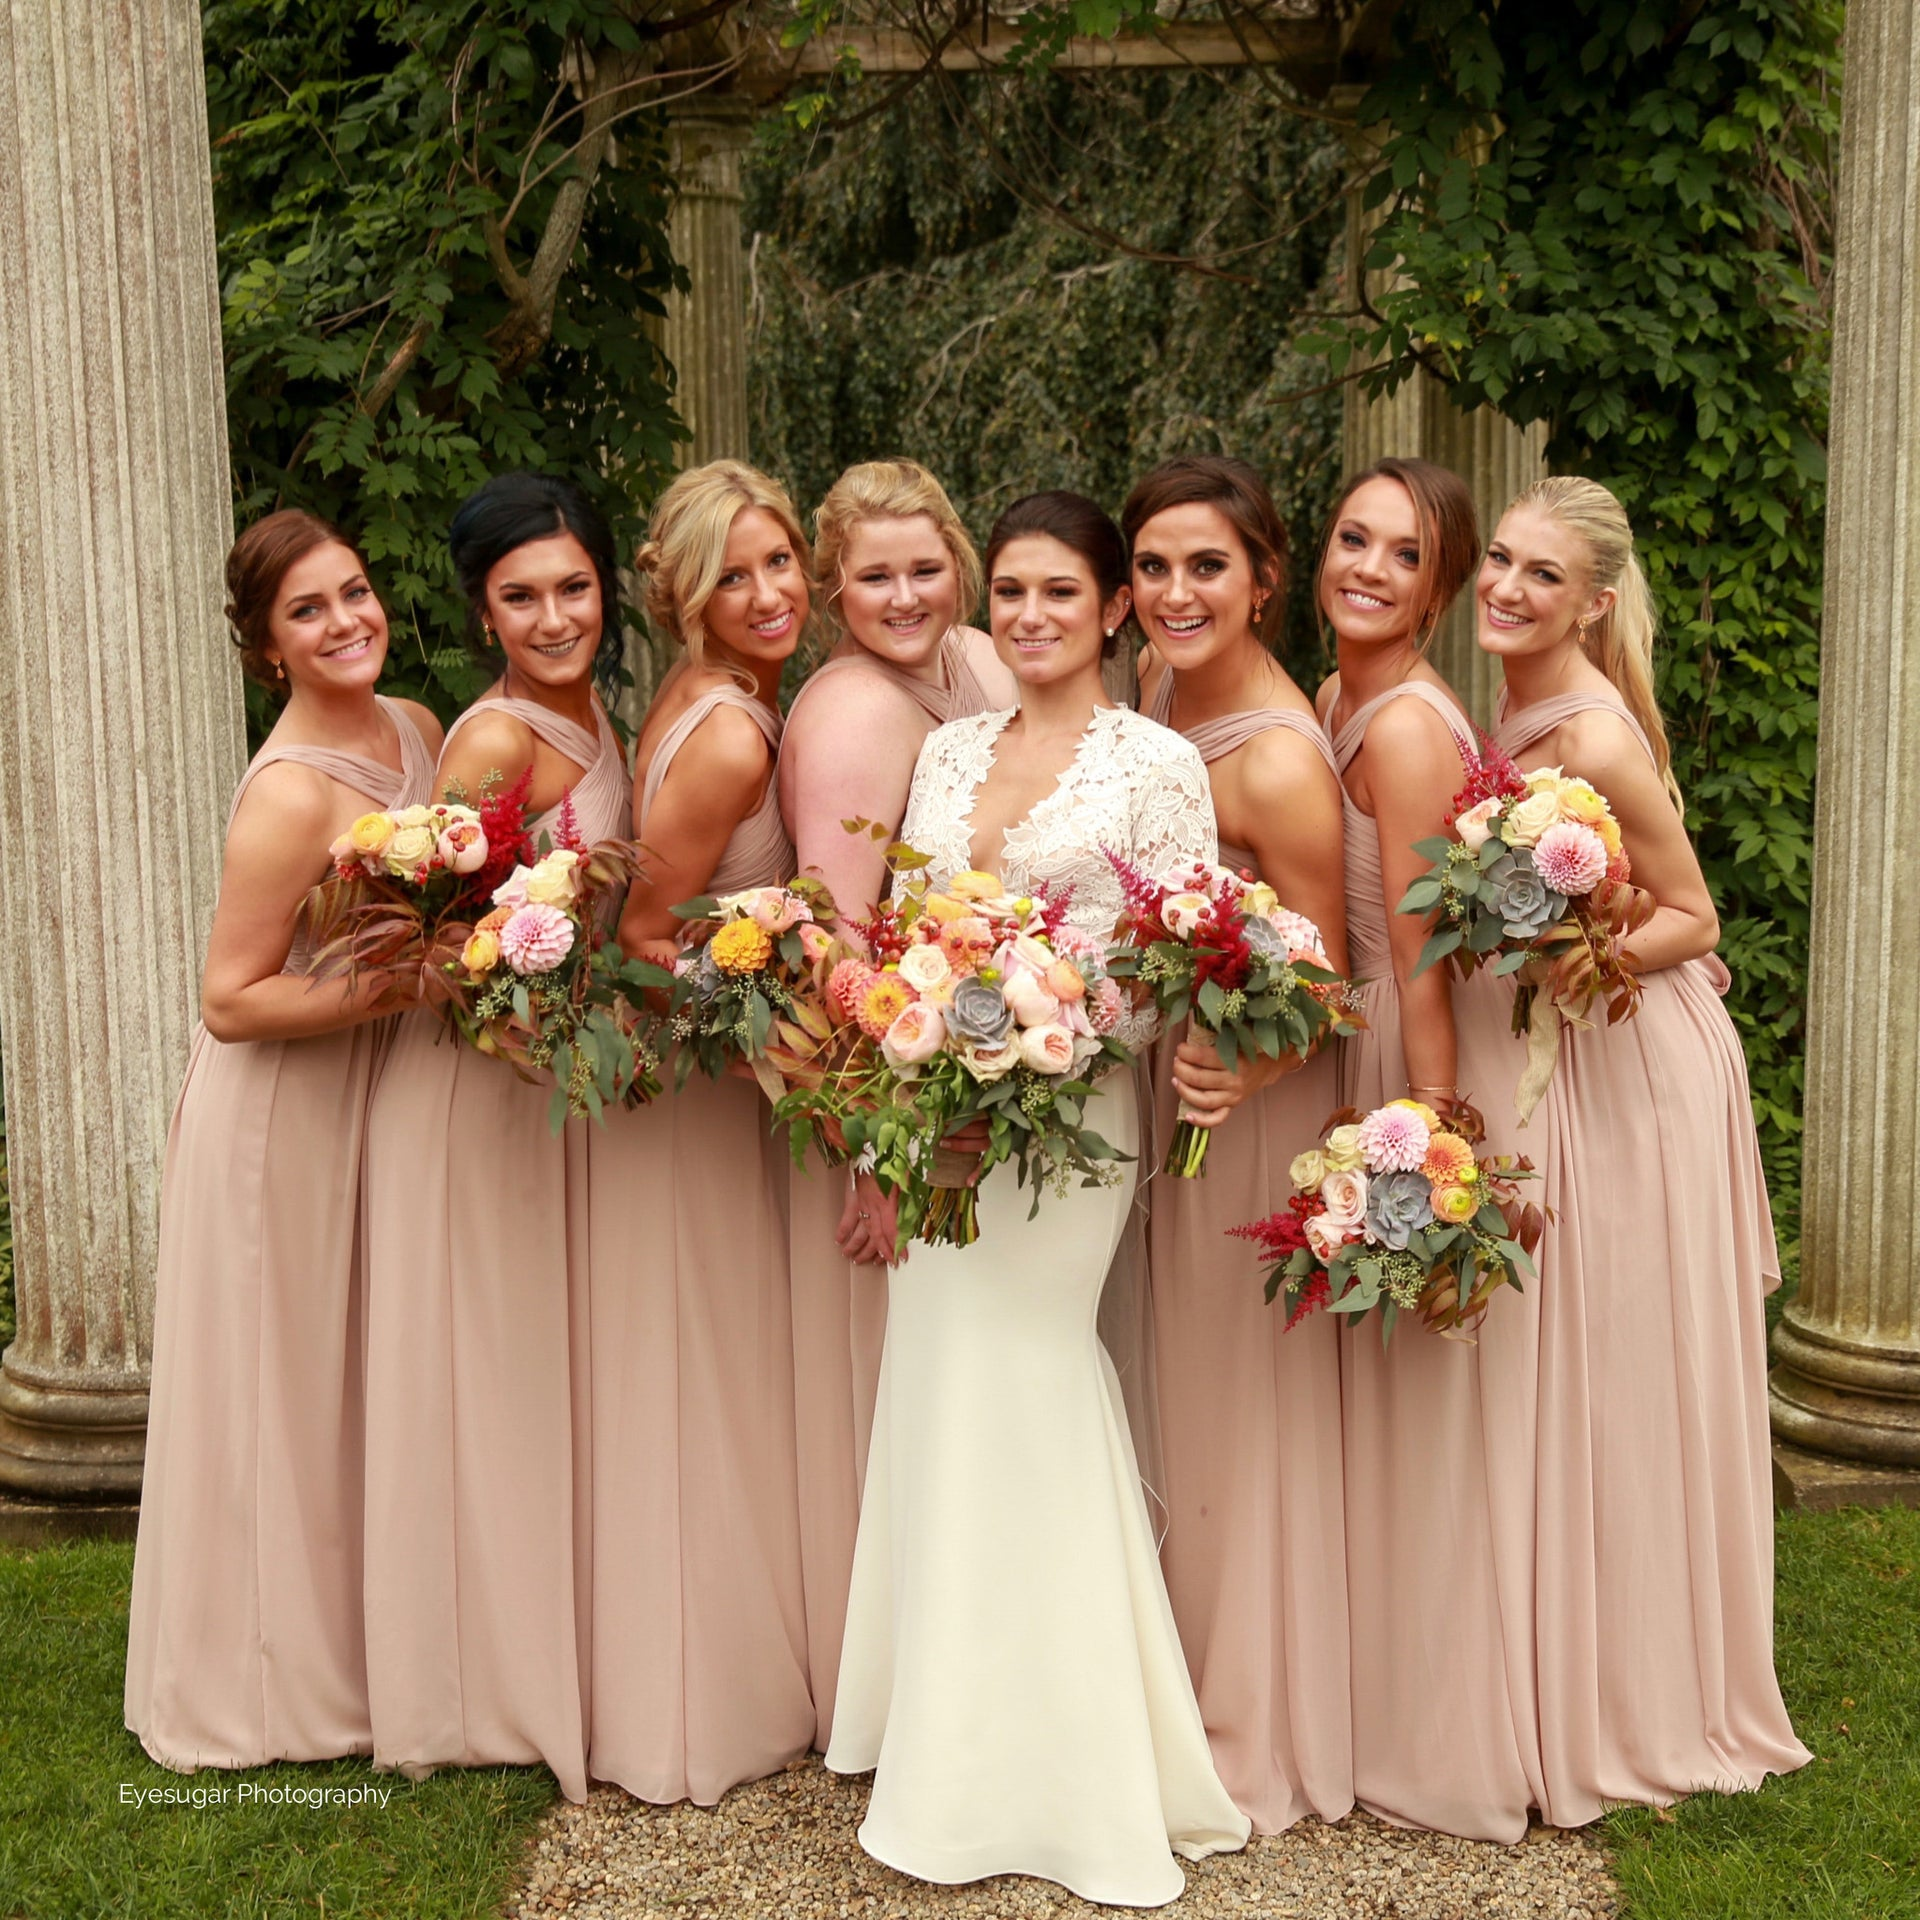 Fall bridal party bouquets in blush, sage, copper, and deep red.